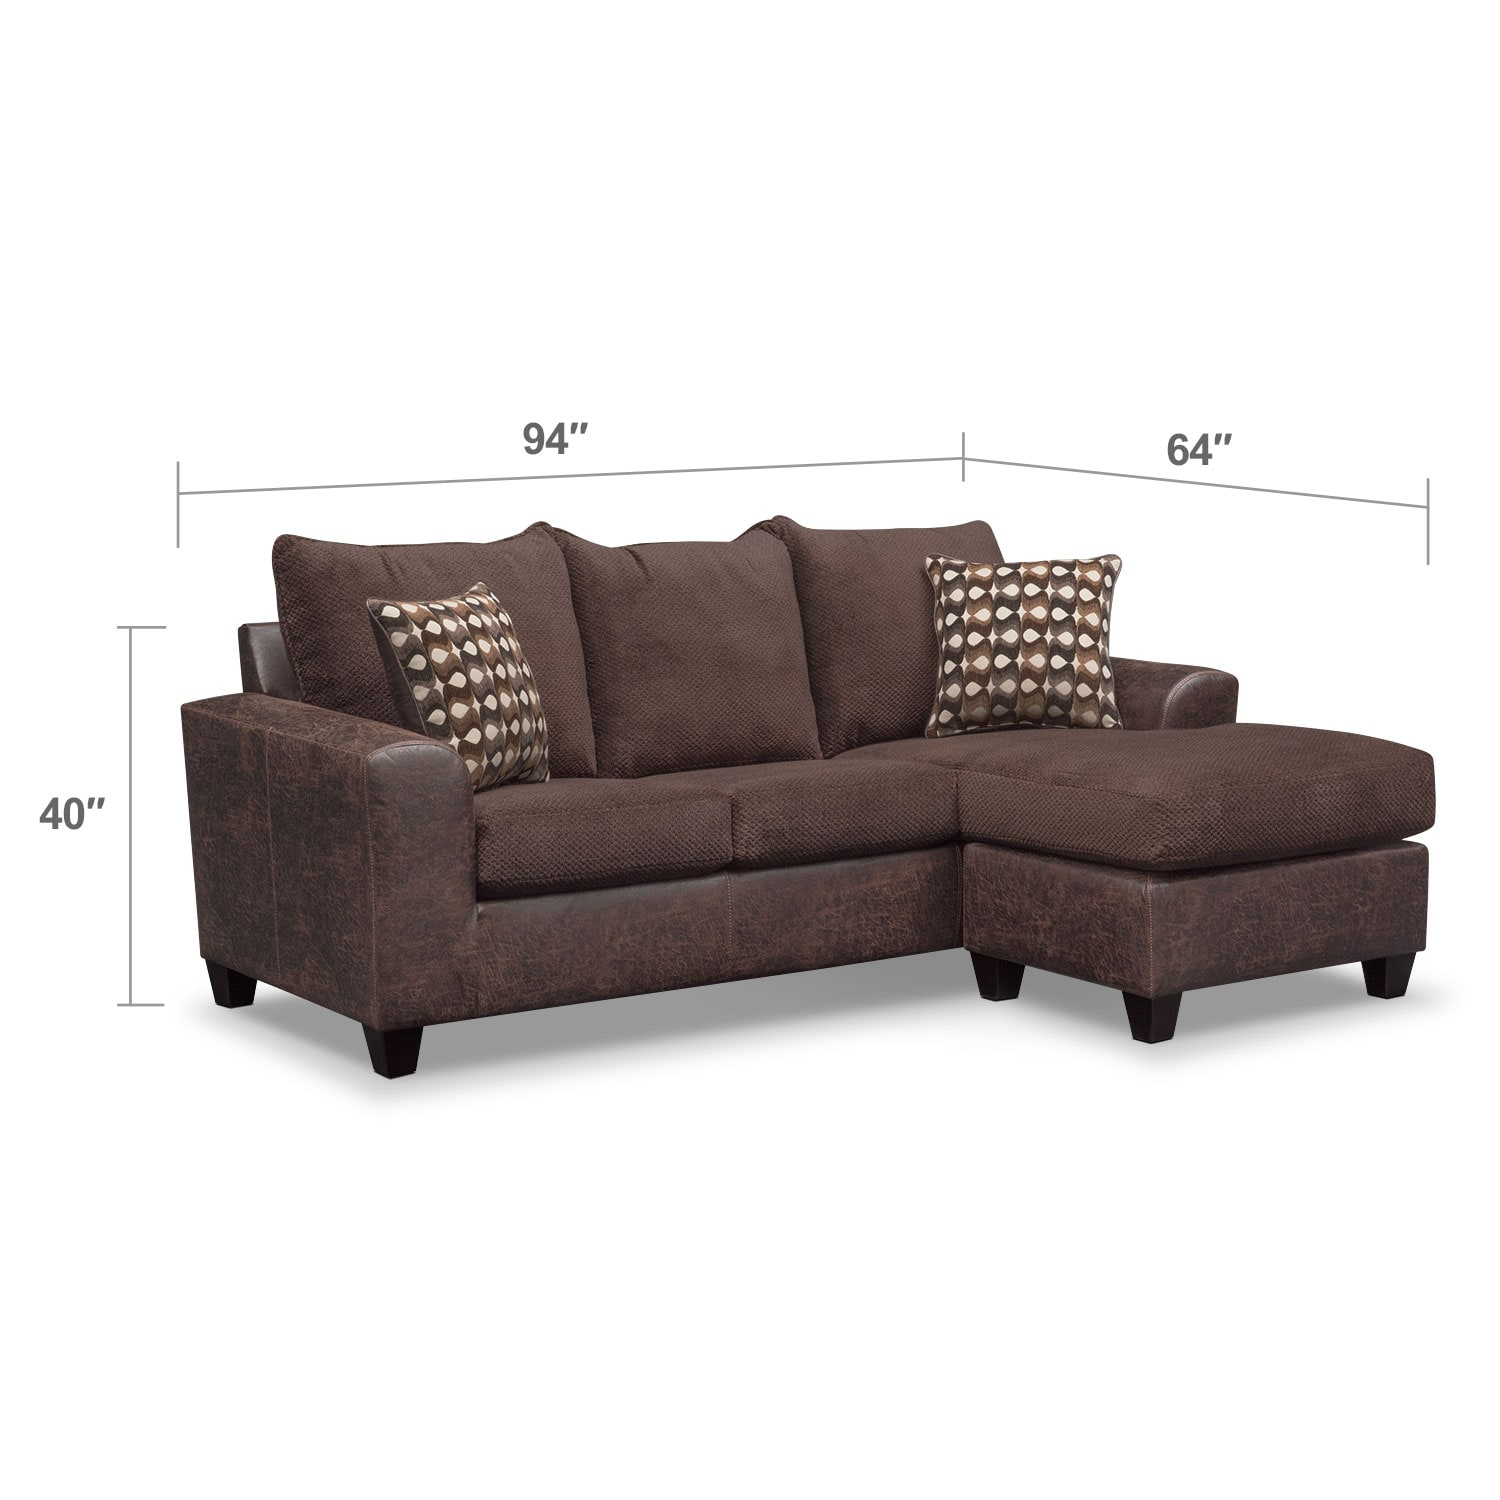 Living Room Furniture - Brando Sofa with Chaise - Chocolate